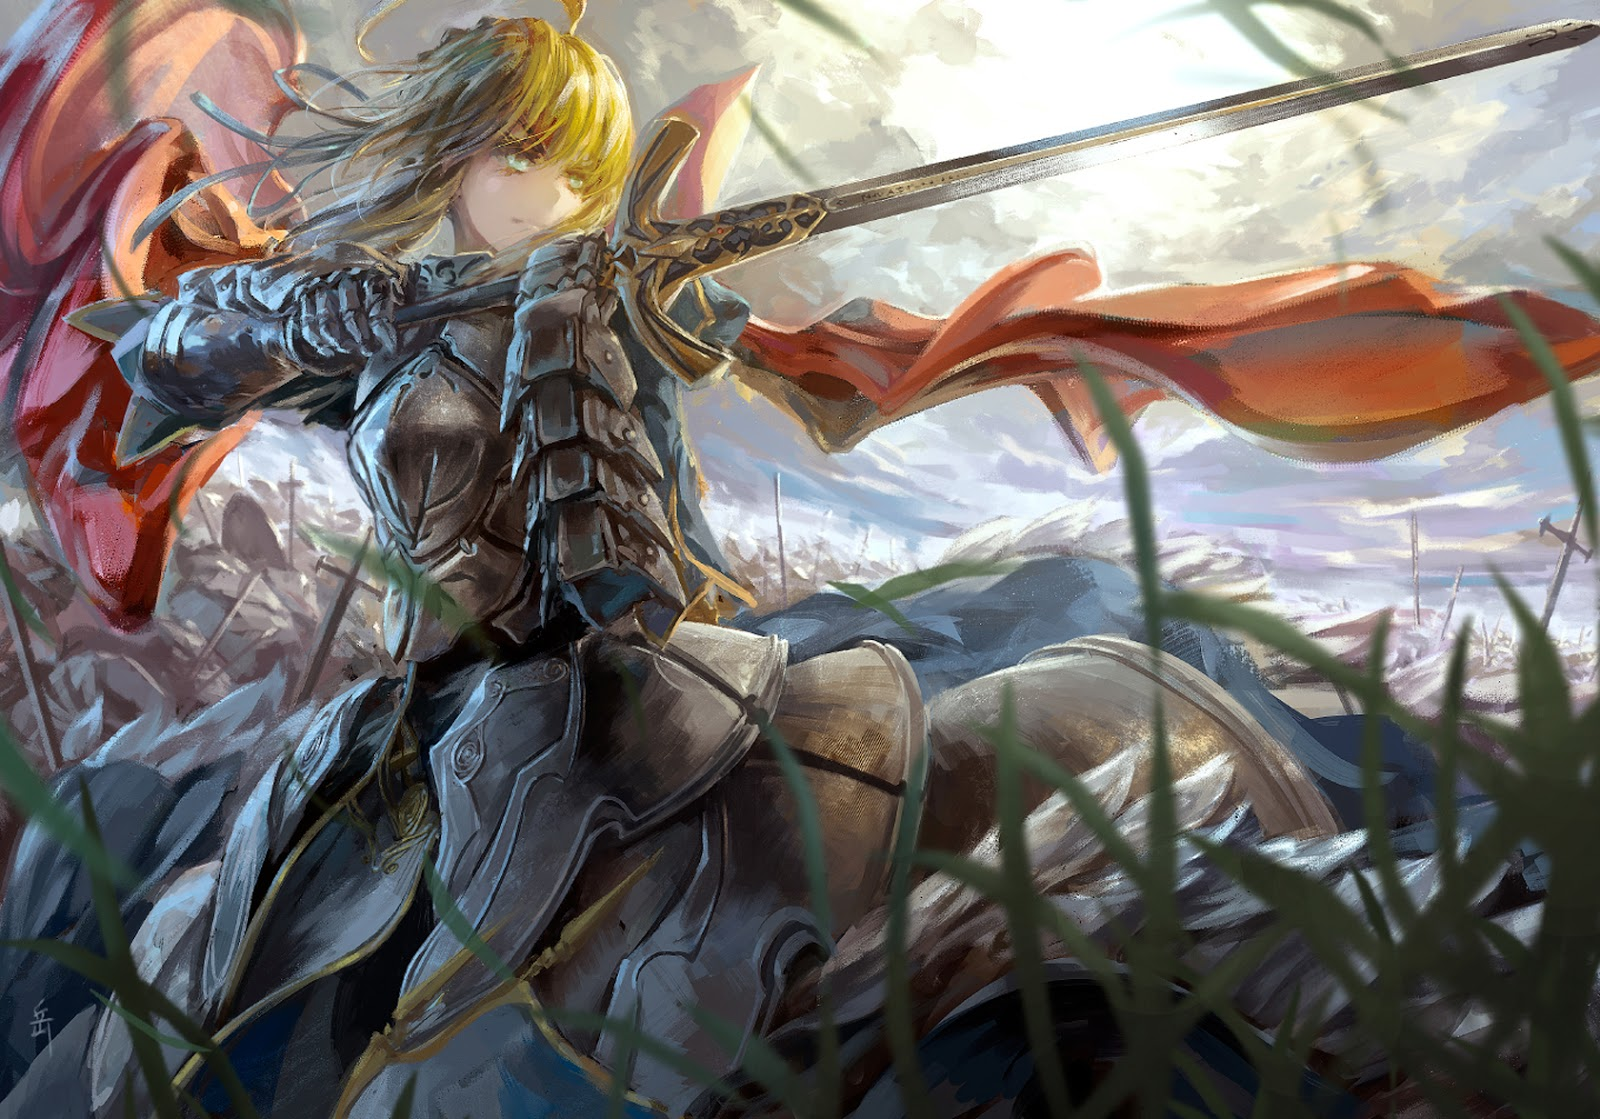 Saber Fate Stay Night Anime Girl Armor Sword Knight Red Cape HD 1600x1119